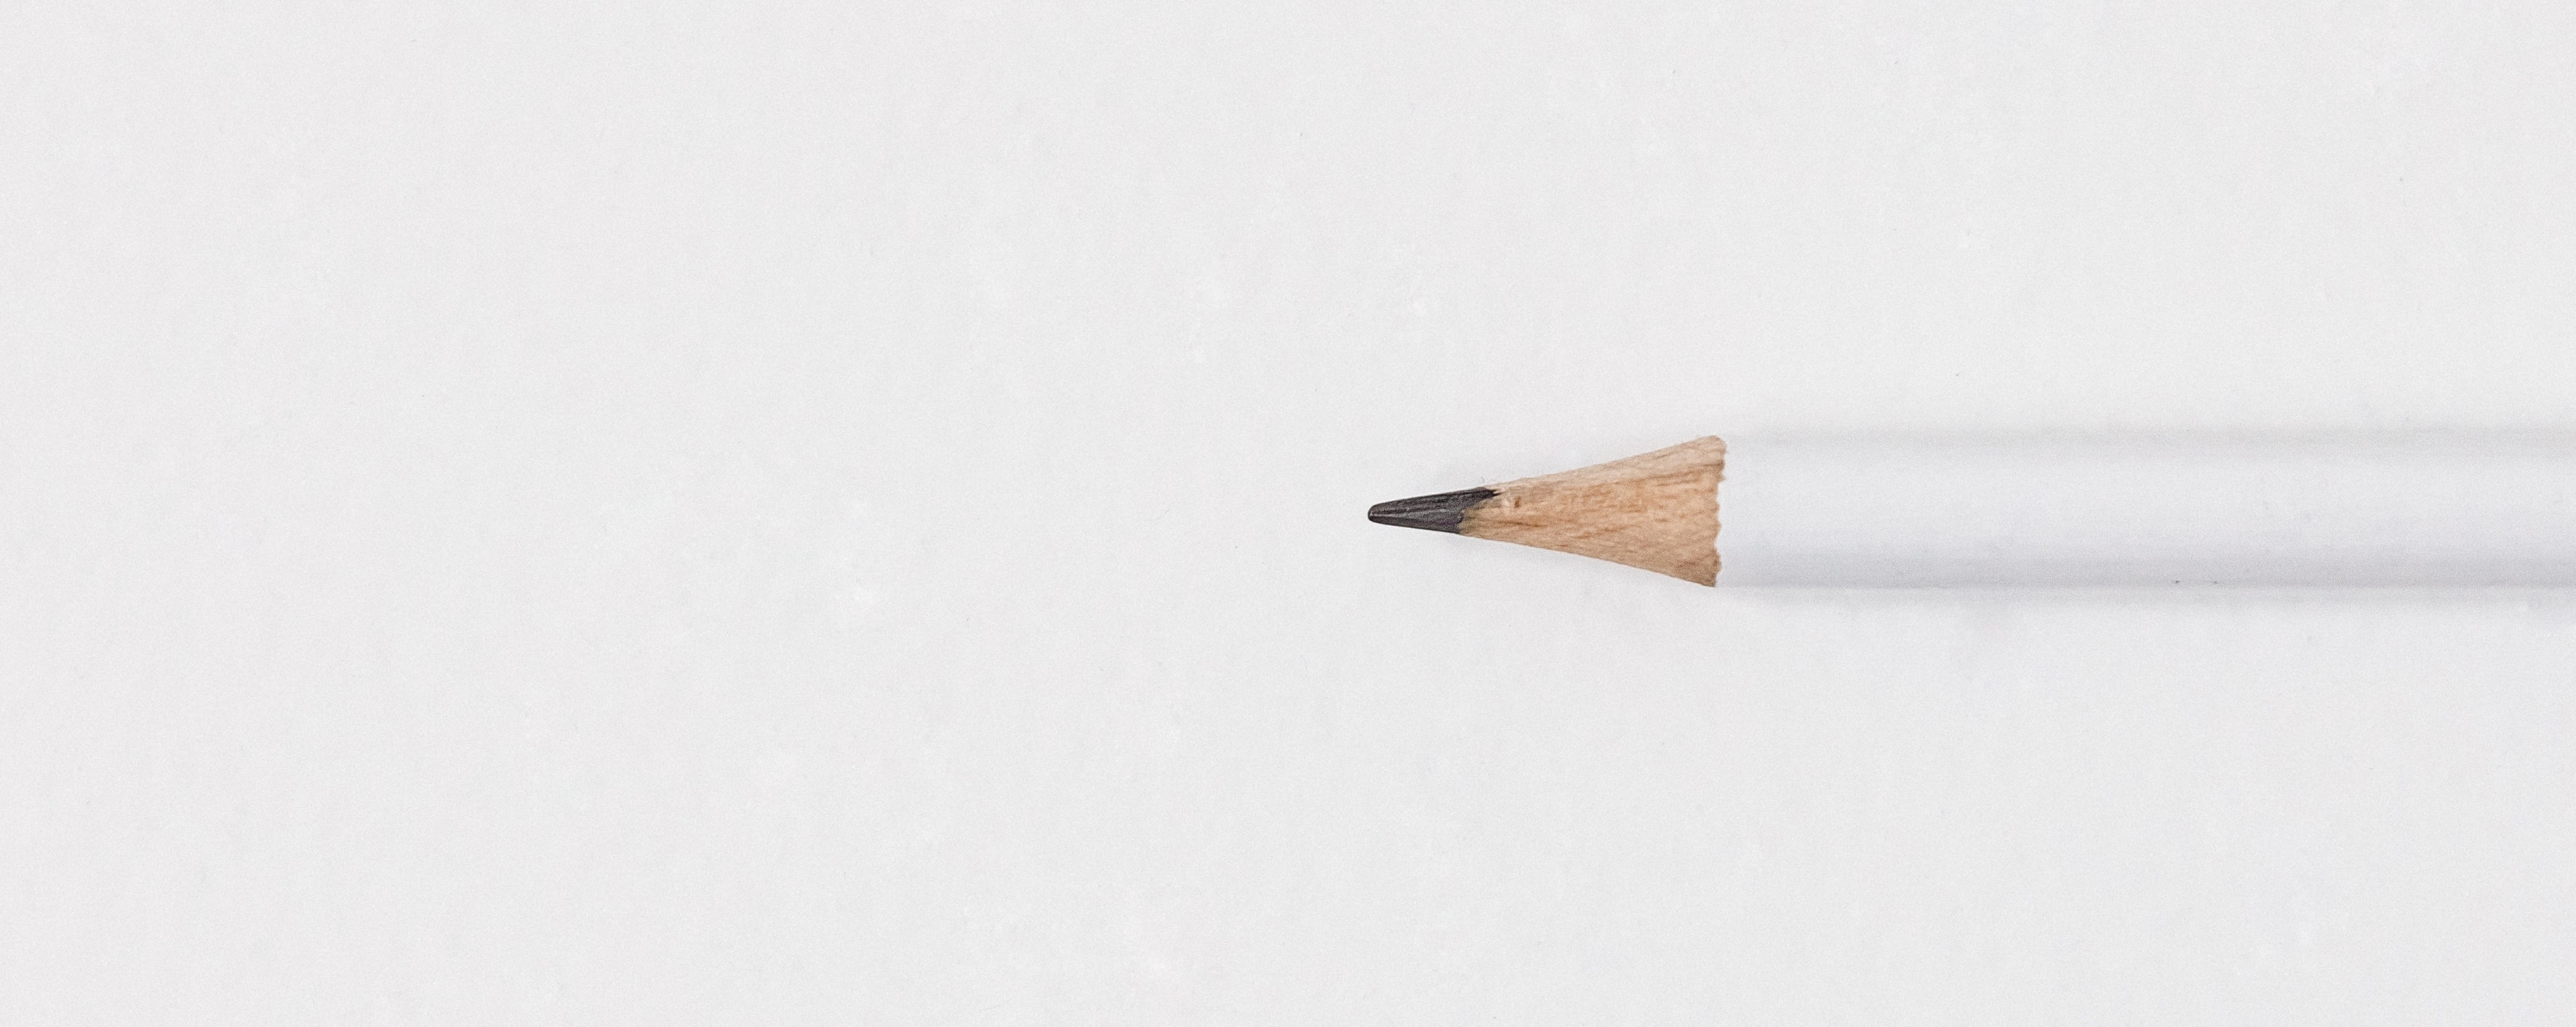 a pencil sitting on a white surface